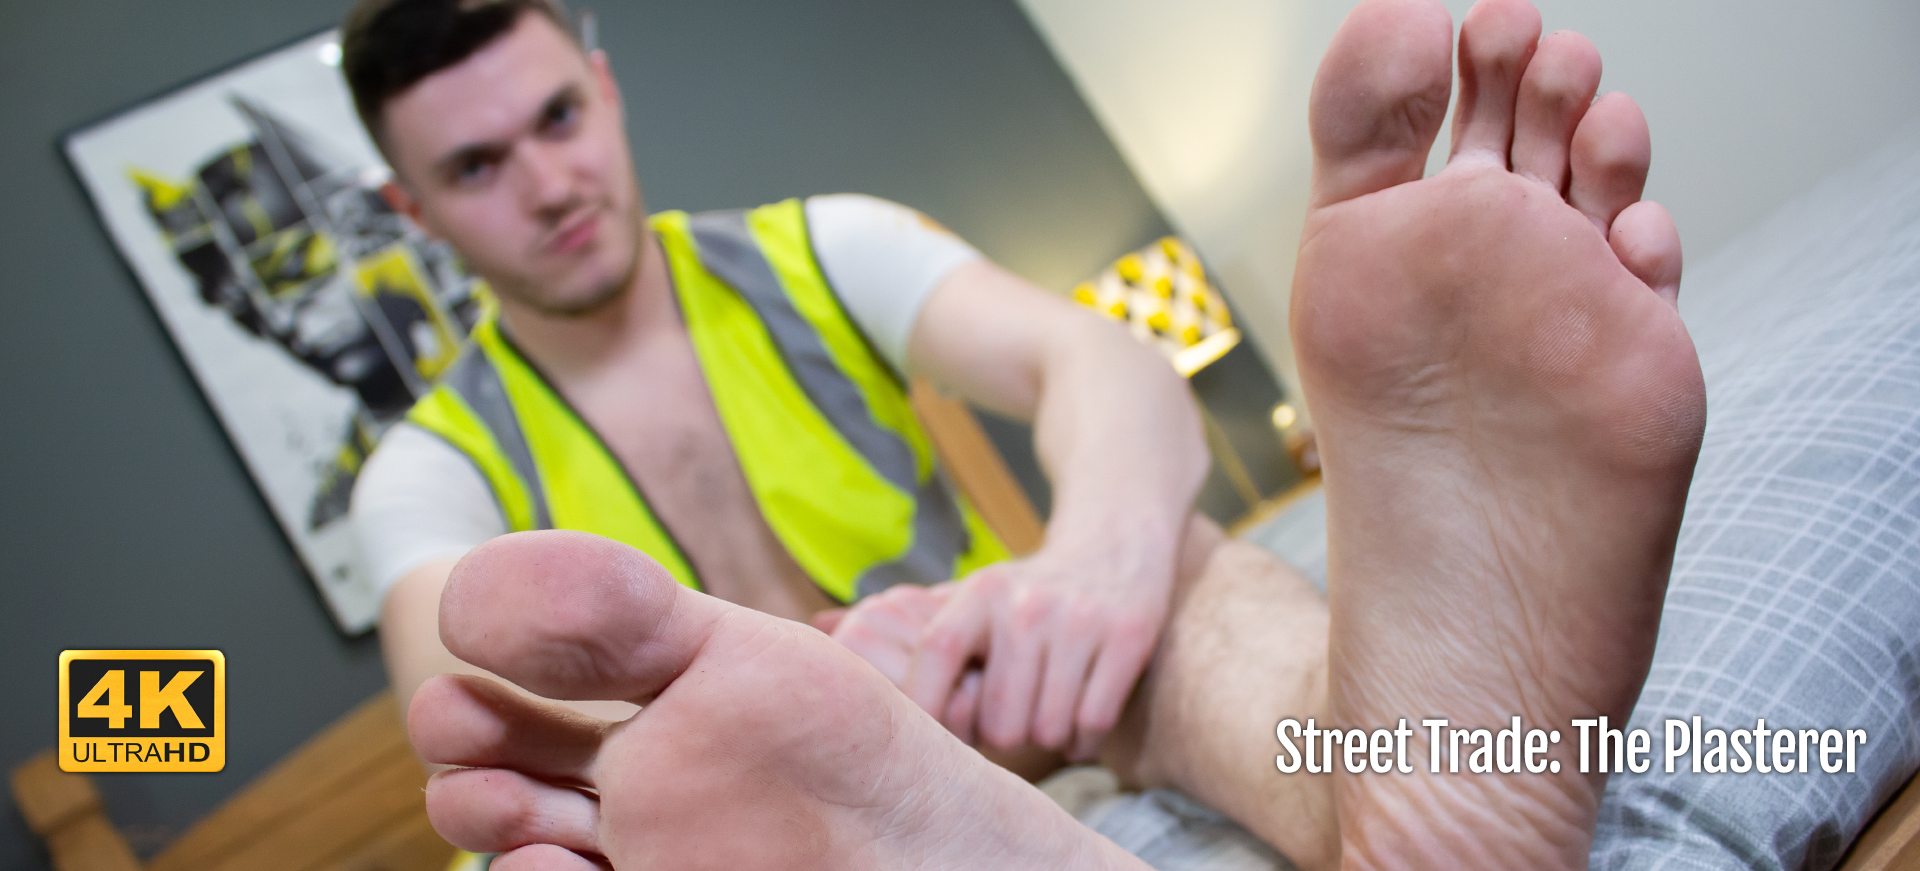 ScottXXX.com - Exclusive British Foot Fetish Action!